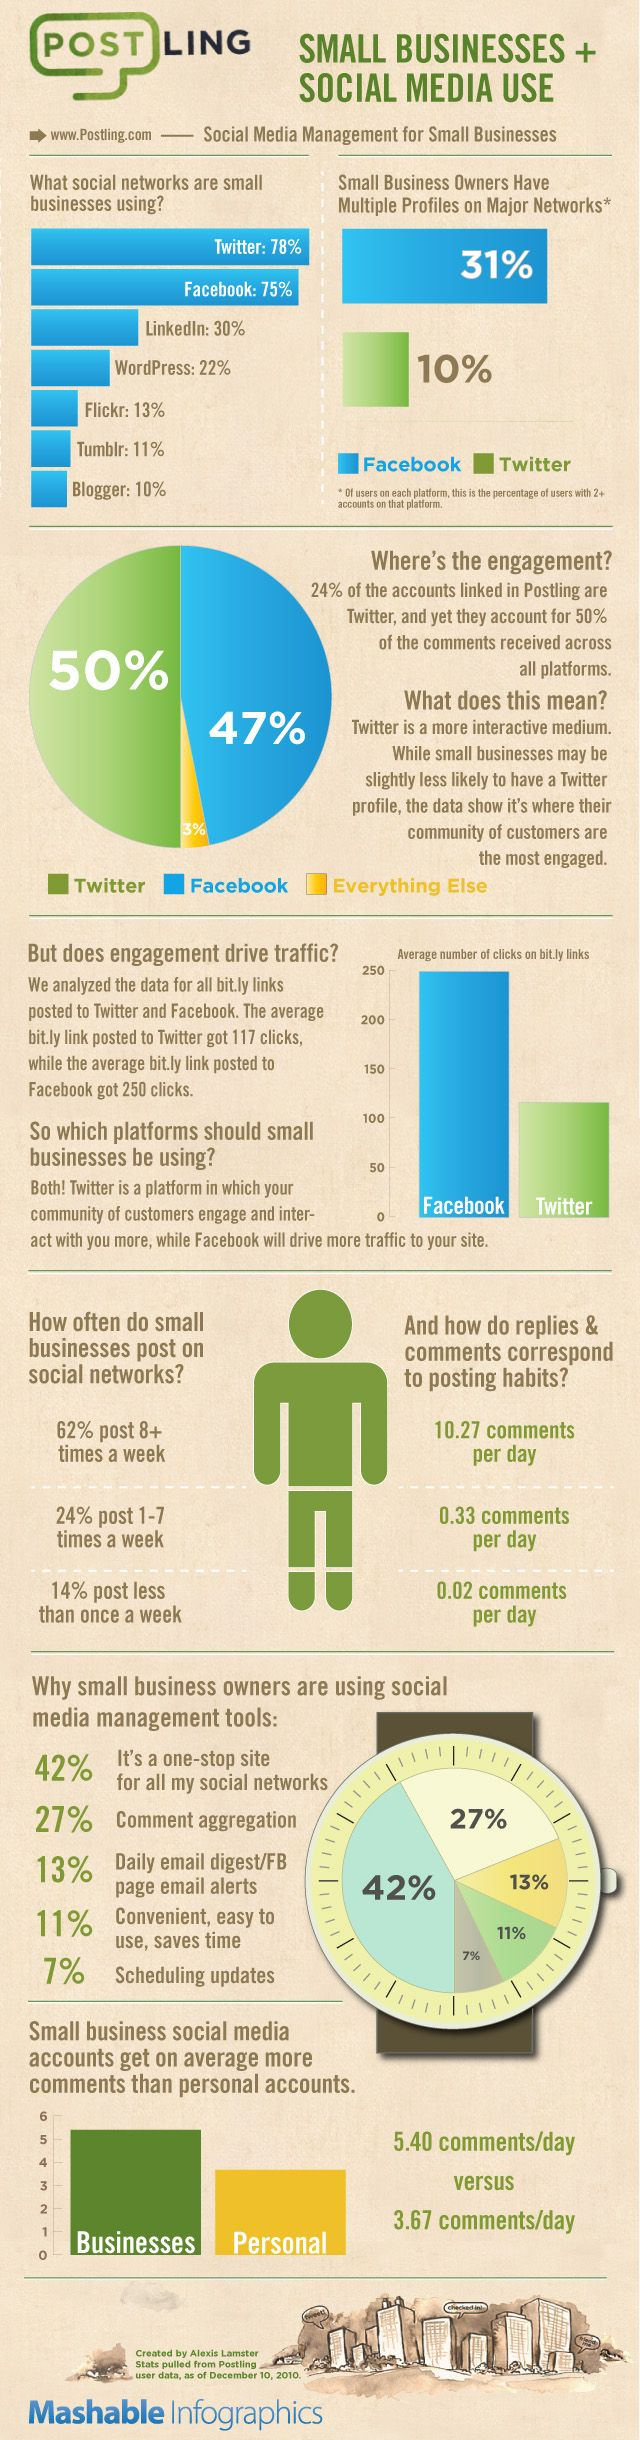 Small business social media useOnline Marketing, Business Owners, Business Social, Social Media, Media Marketing, Media Infographic, Small Businesses, Socialmedia, Business Infographic